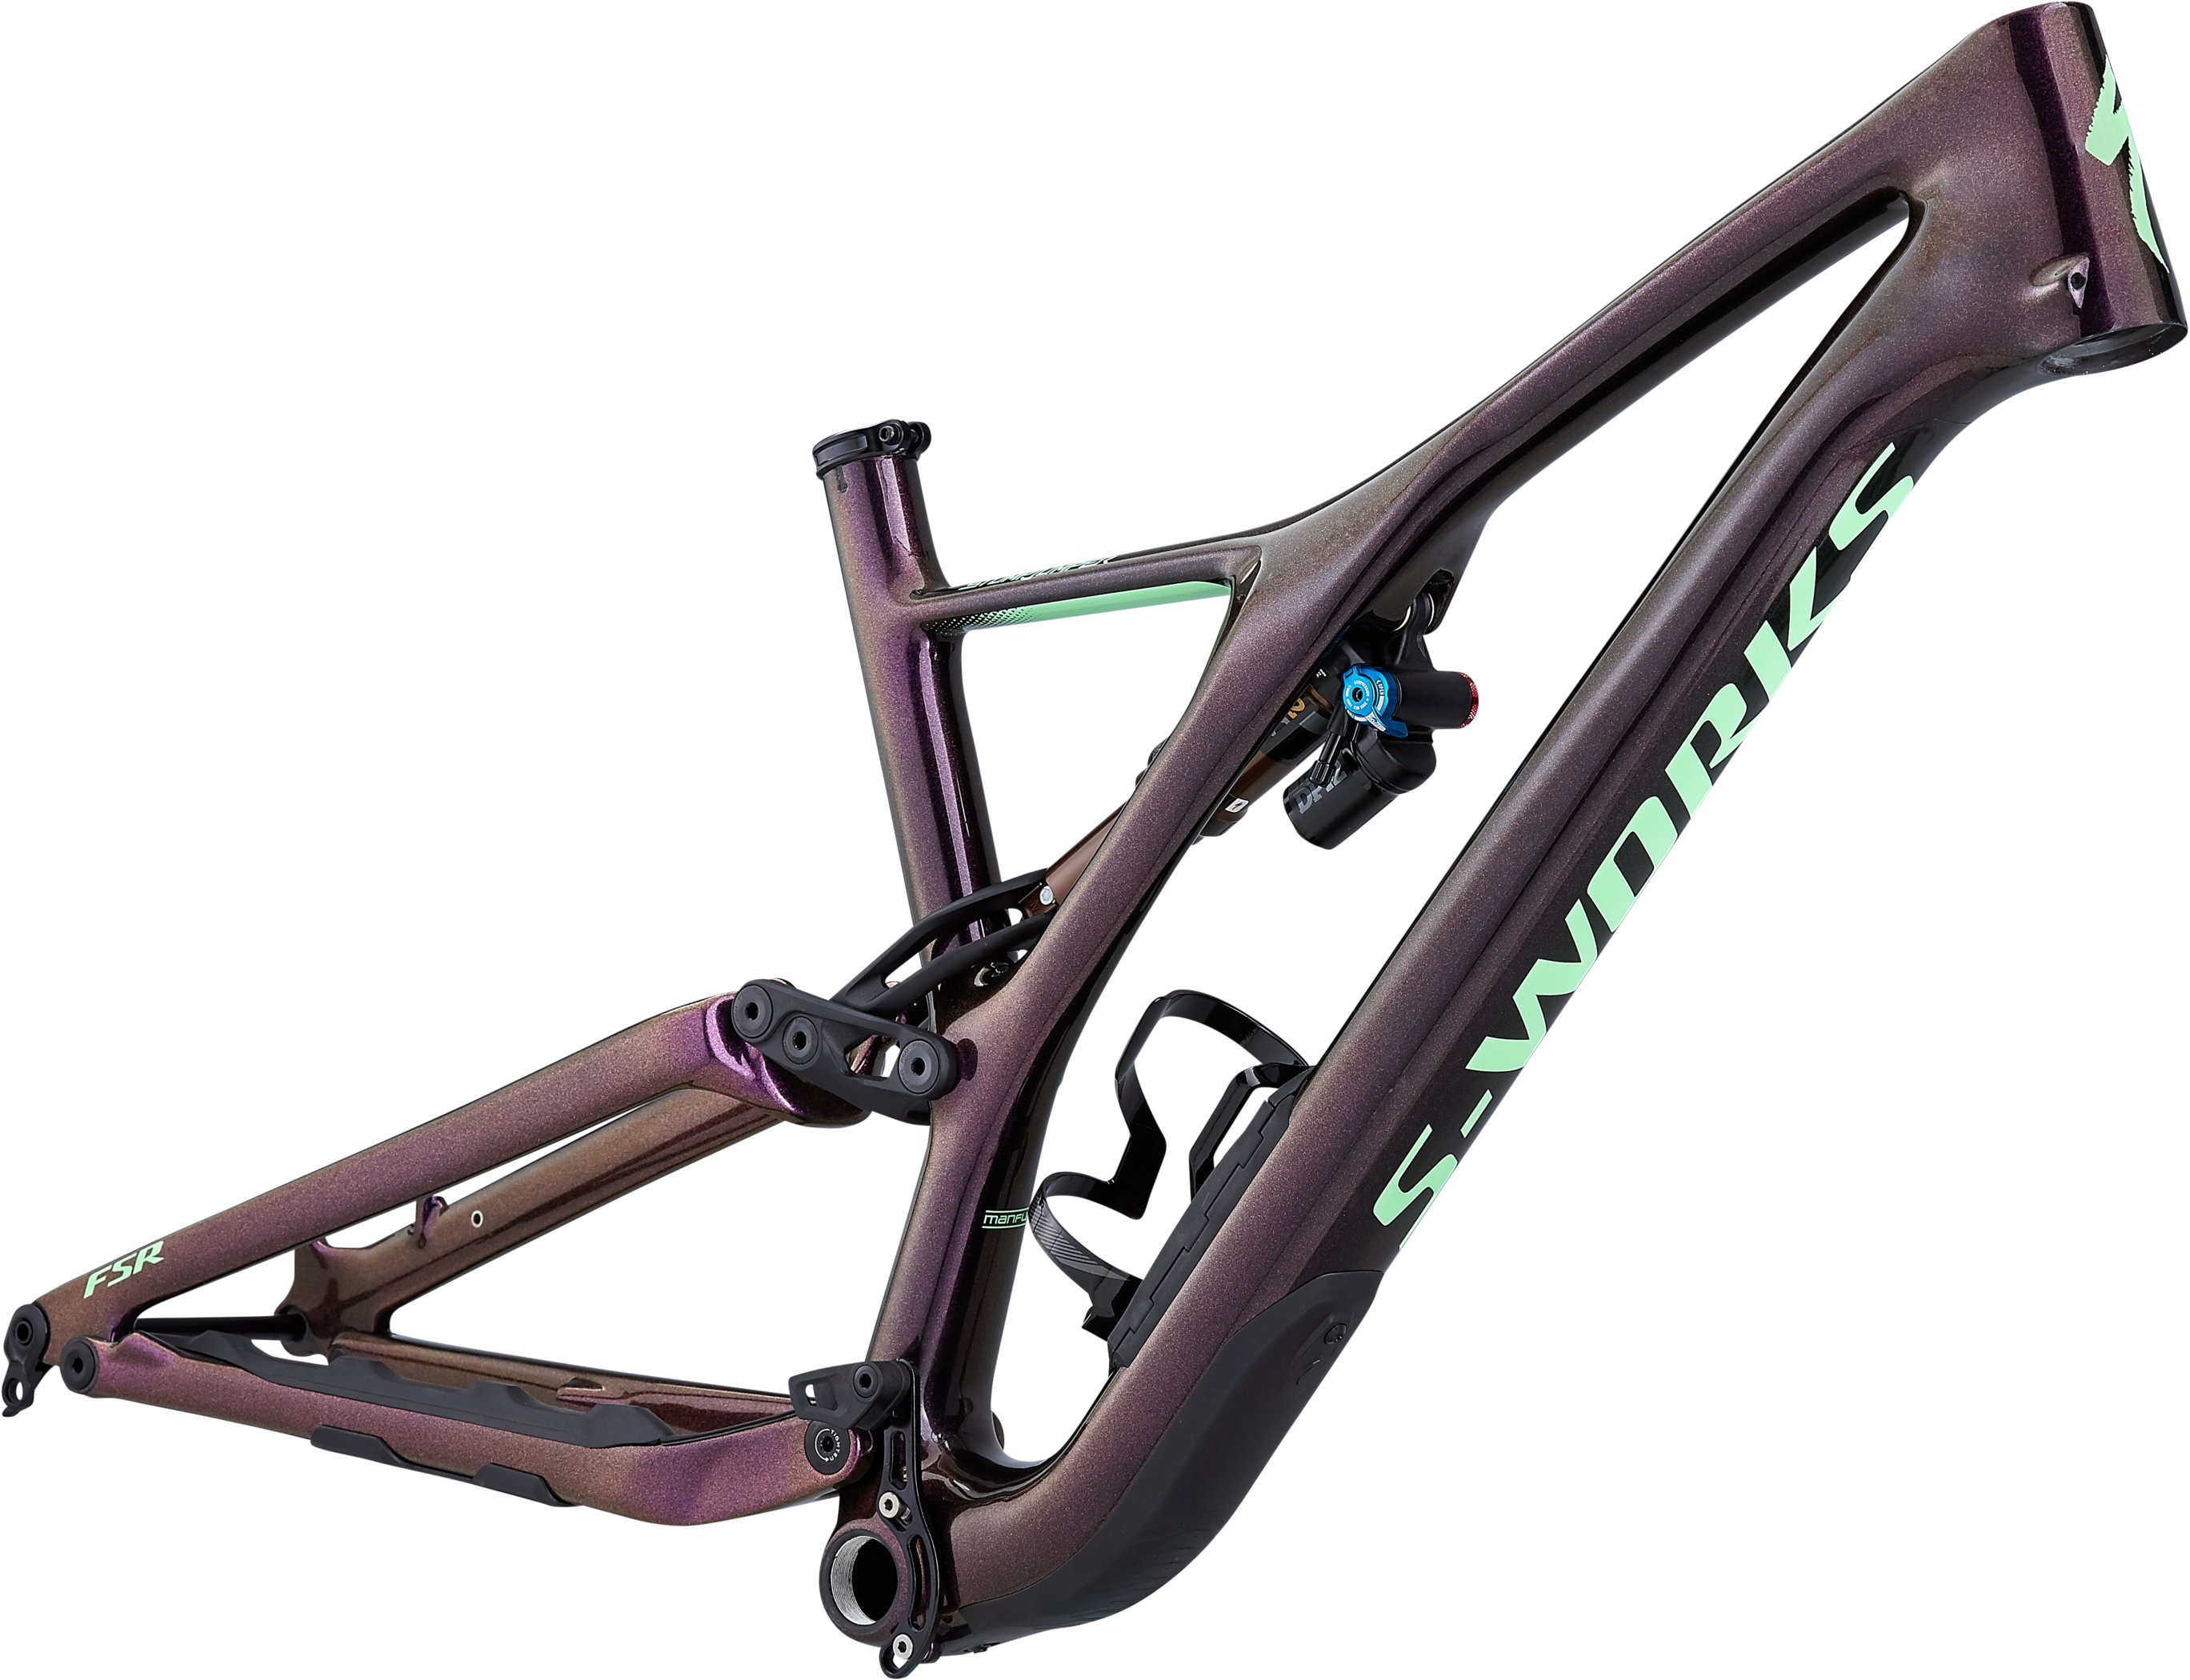 2019 Specialized S-Works Stumpjumper 29 Frameset - Specialized ...